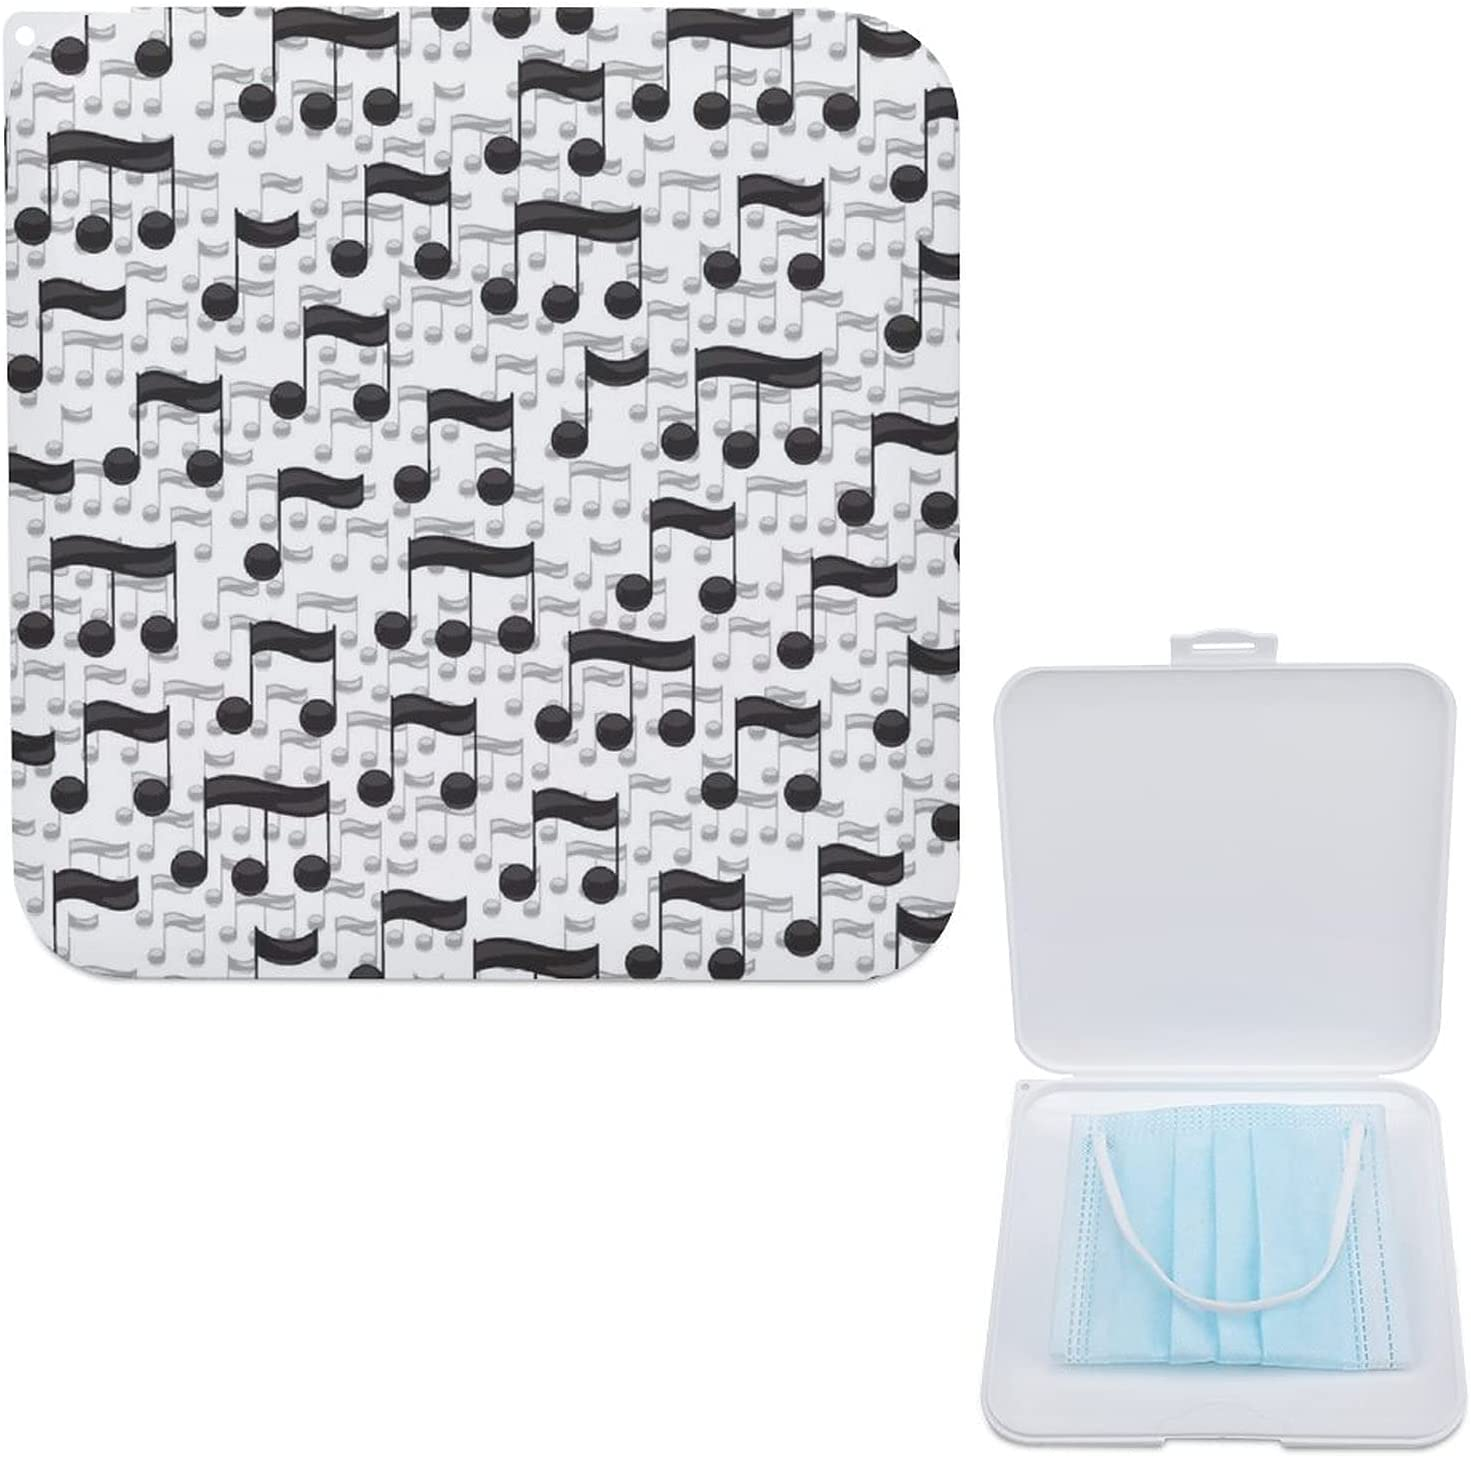 Face Mask Max 61% OFF Storage Box-Various Manufacturer OFFicial shop Pattern Box Cover Dust Sto